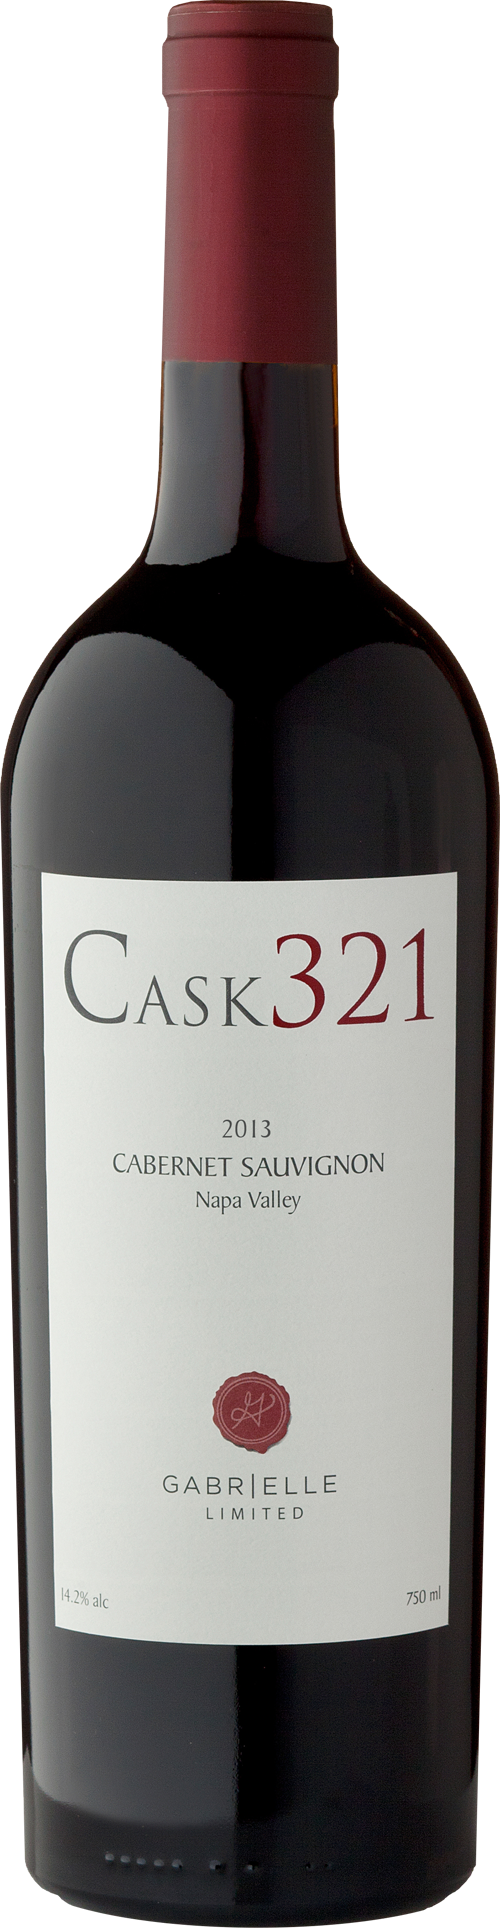 2013 Cask 321 Napa Valley - Library LARGE